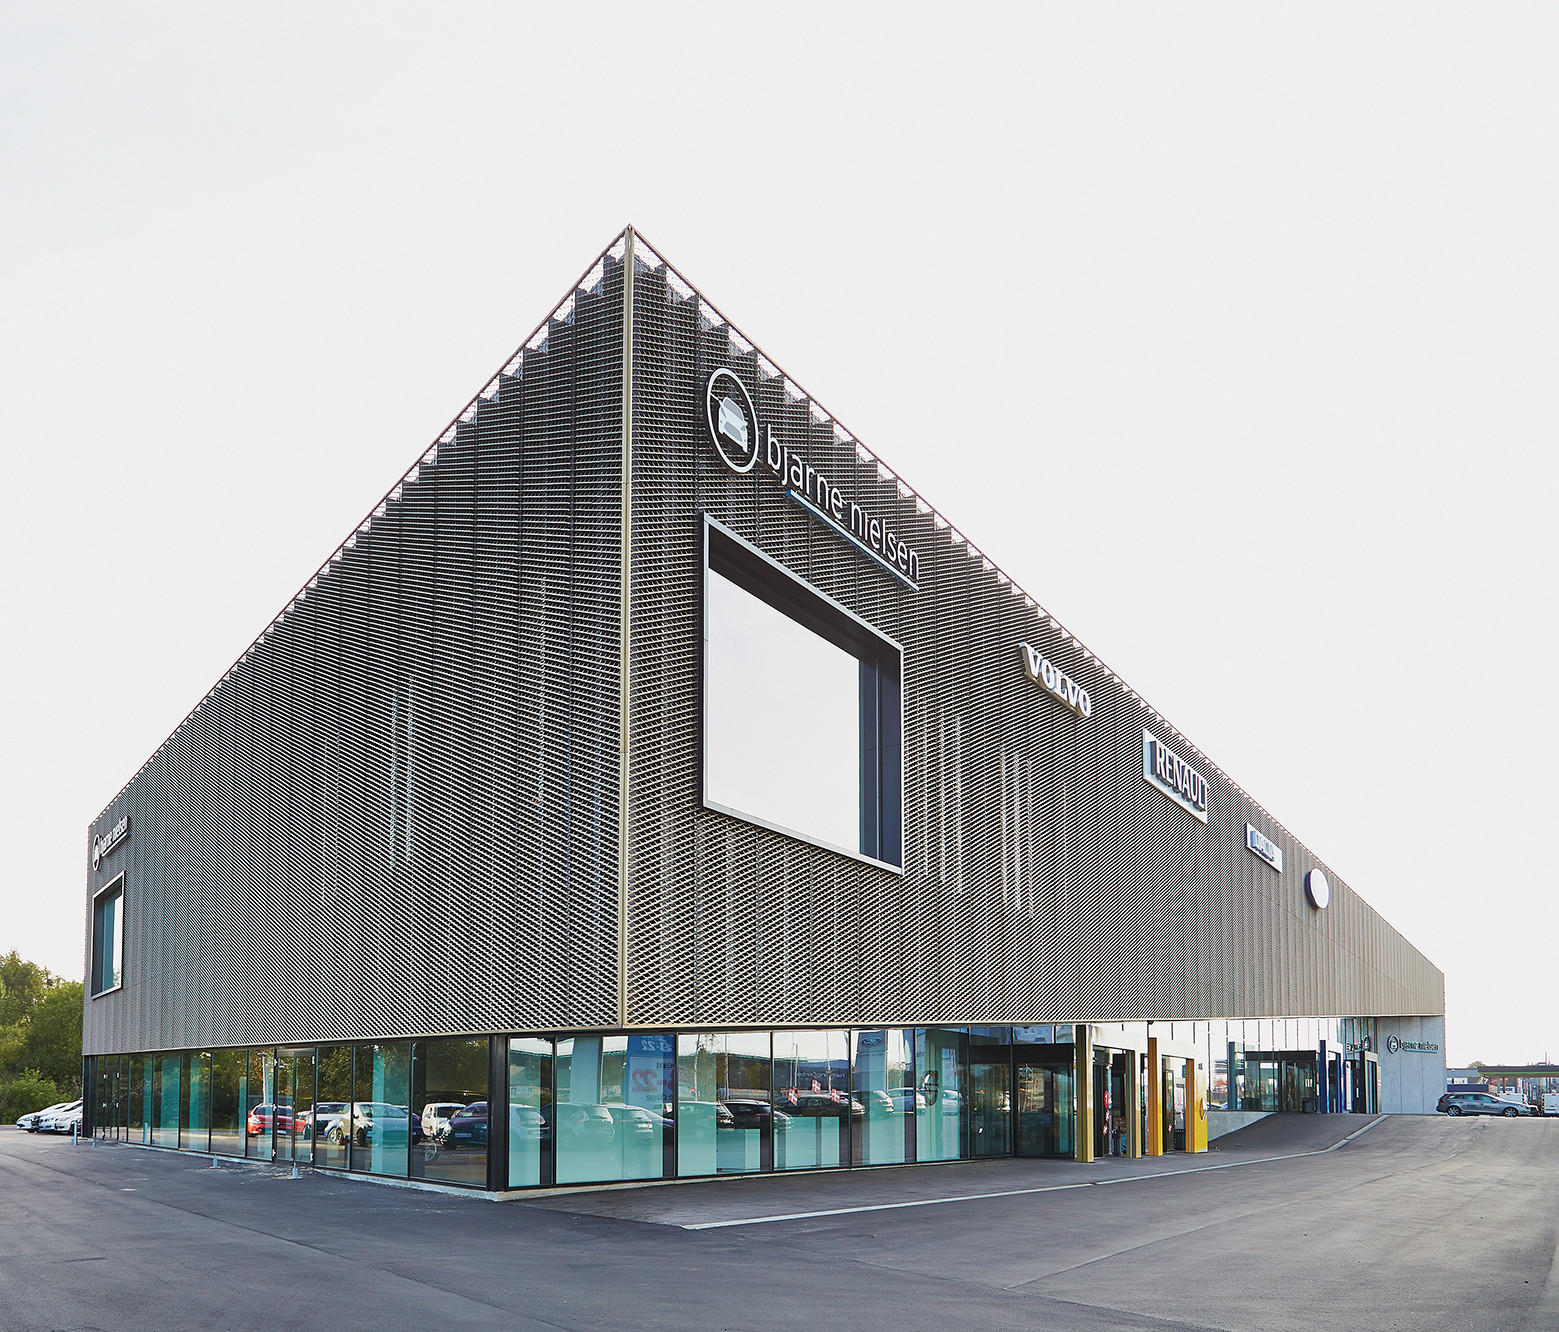 Automotive Showroom in Herning / KRADS, © Tina Stephansen - Studio 55